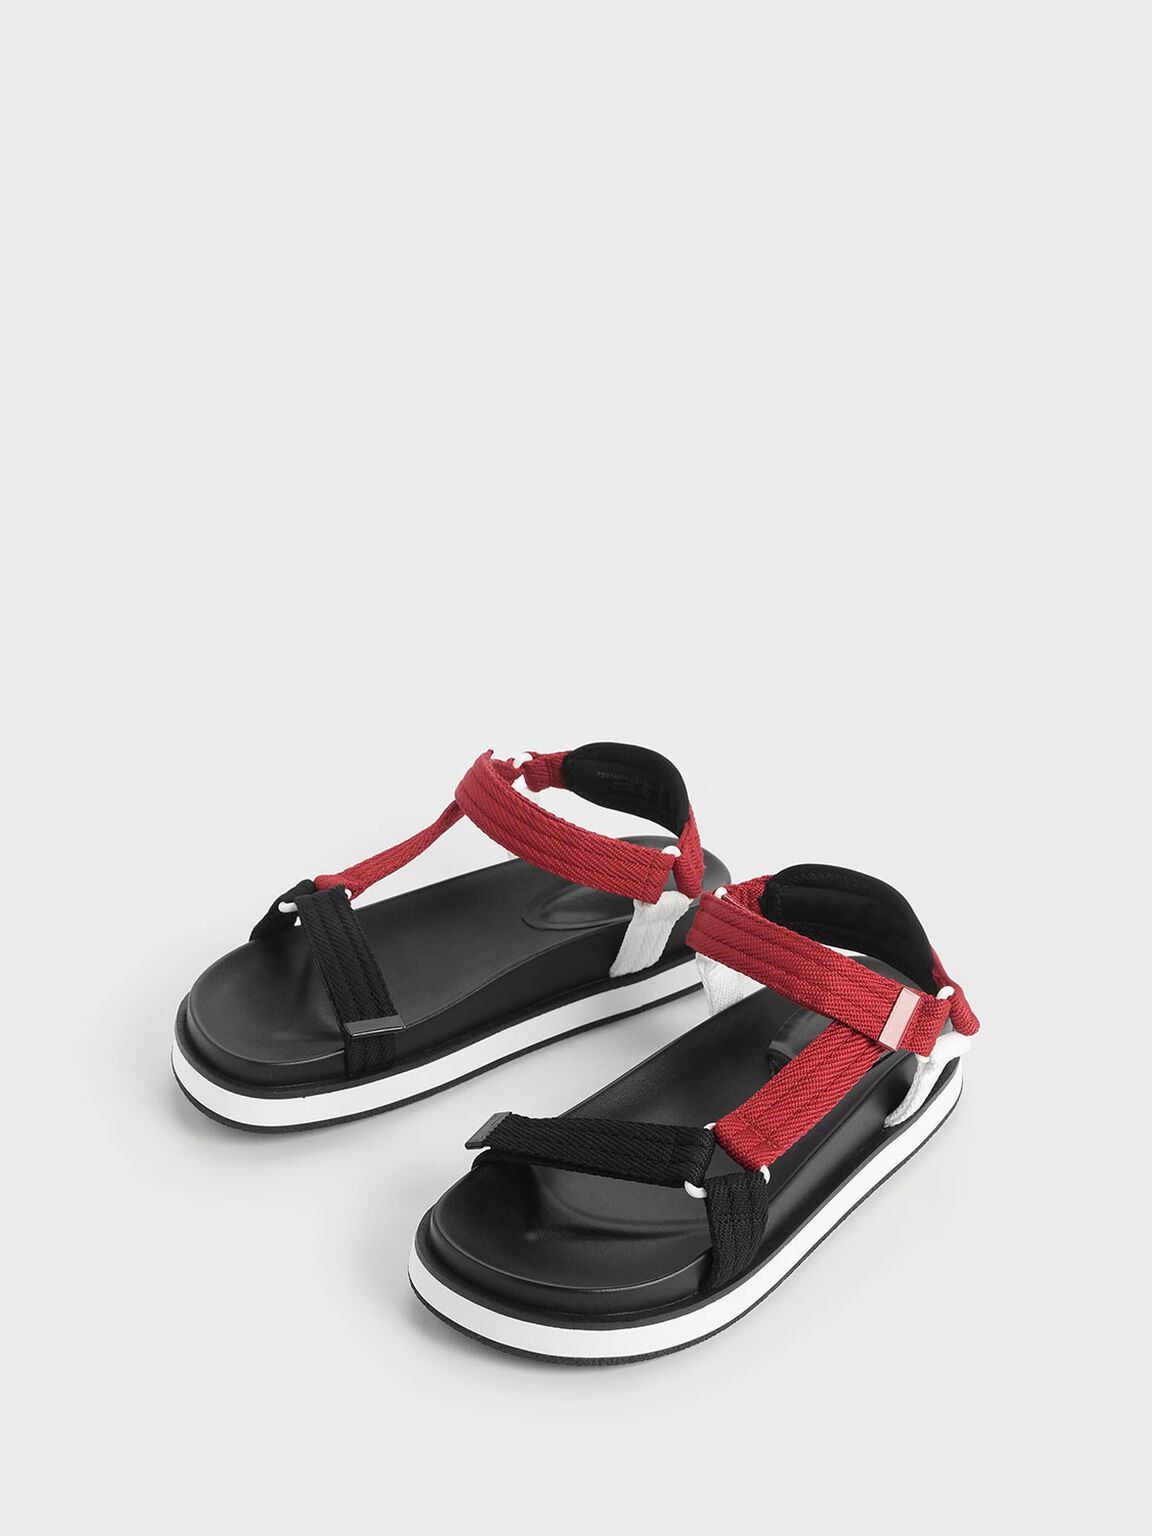 Two-Tone Strap Sandals, Red, hi-res